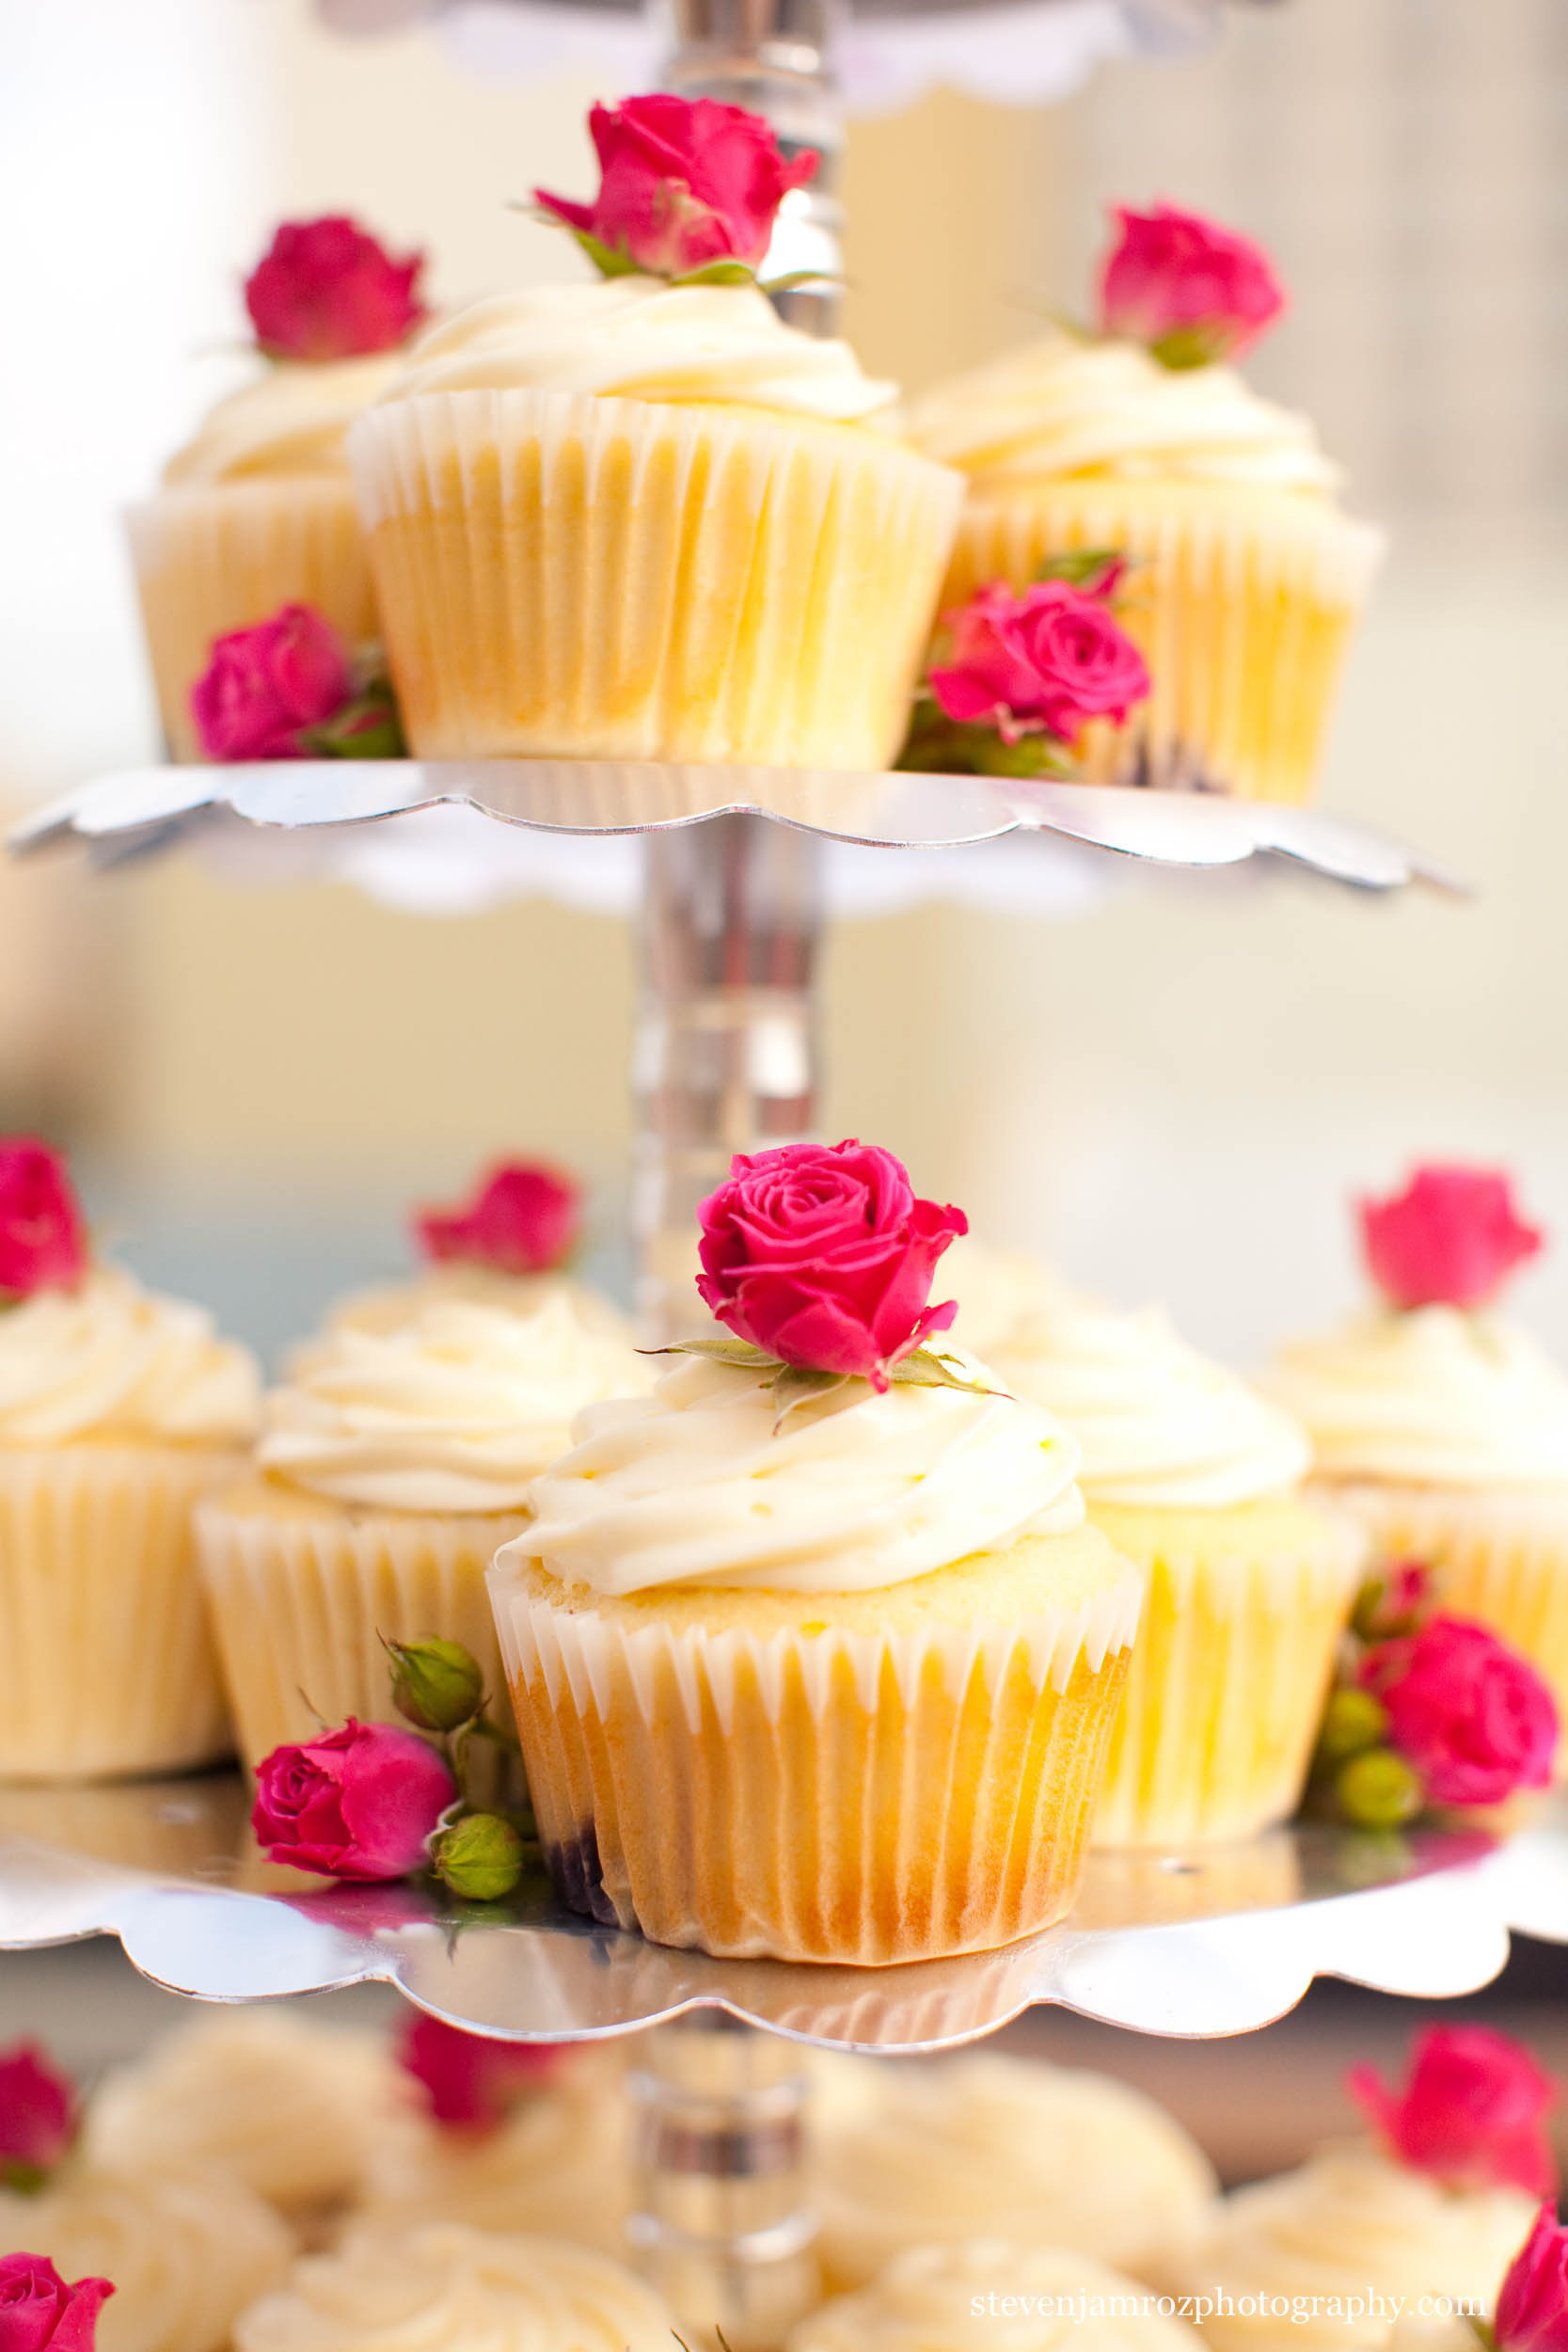 cupcakes-and-cake-wedding-raleigh-photography-0926.jpg